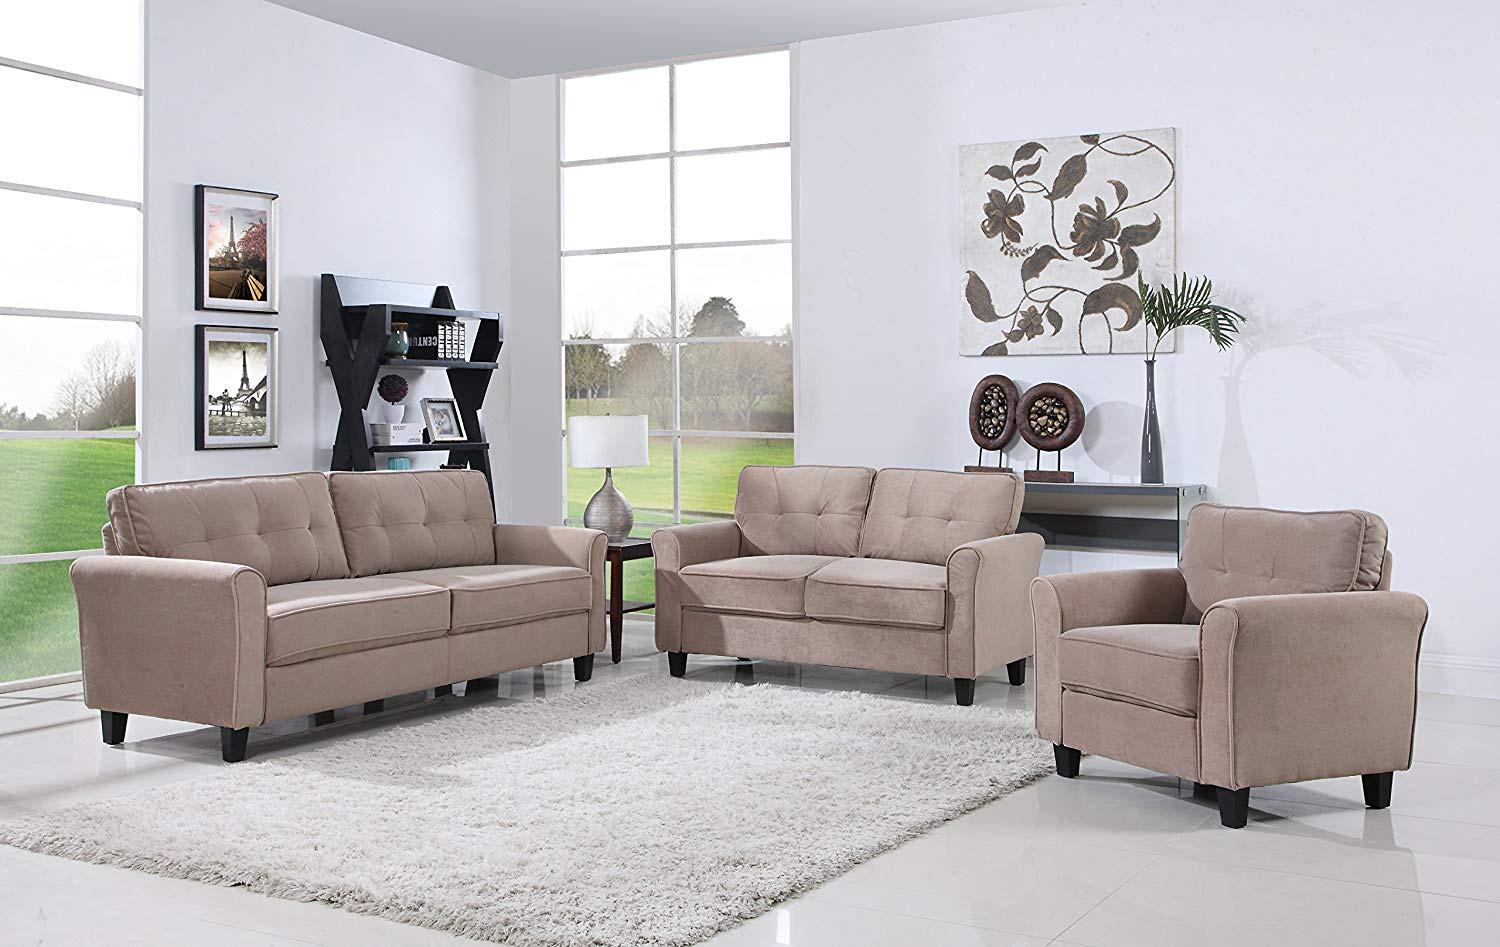 Best ideas about Cheap Living Room Furniture . Save or Pin Cheap Living Room Sets Under 300 Best Living Room Sets Now.